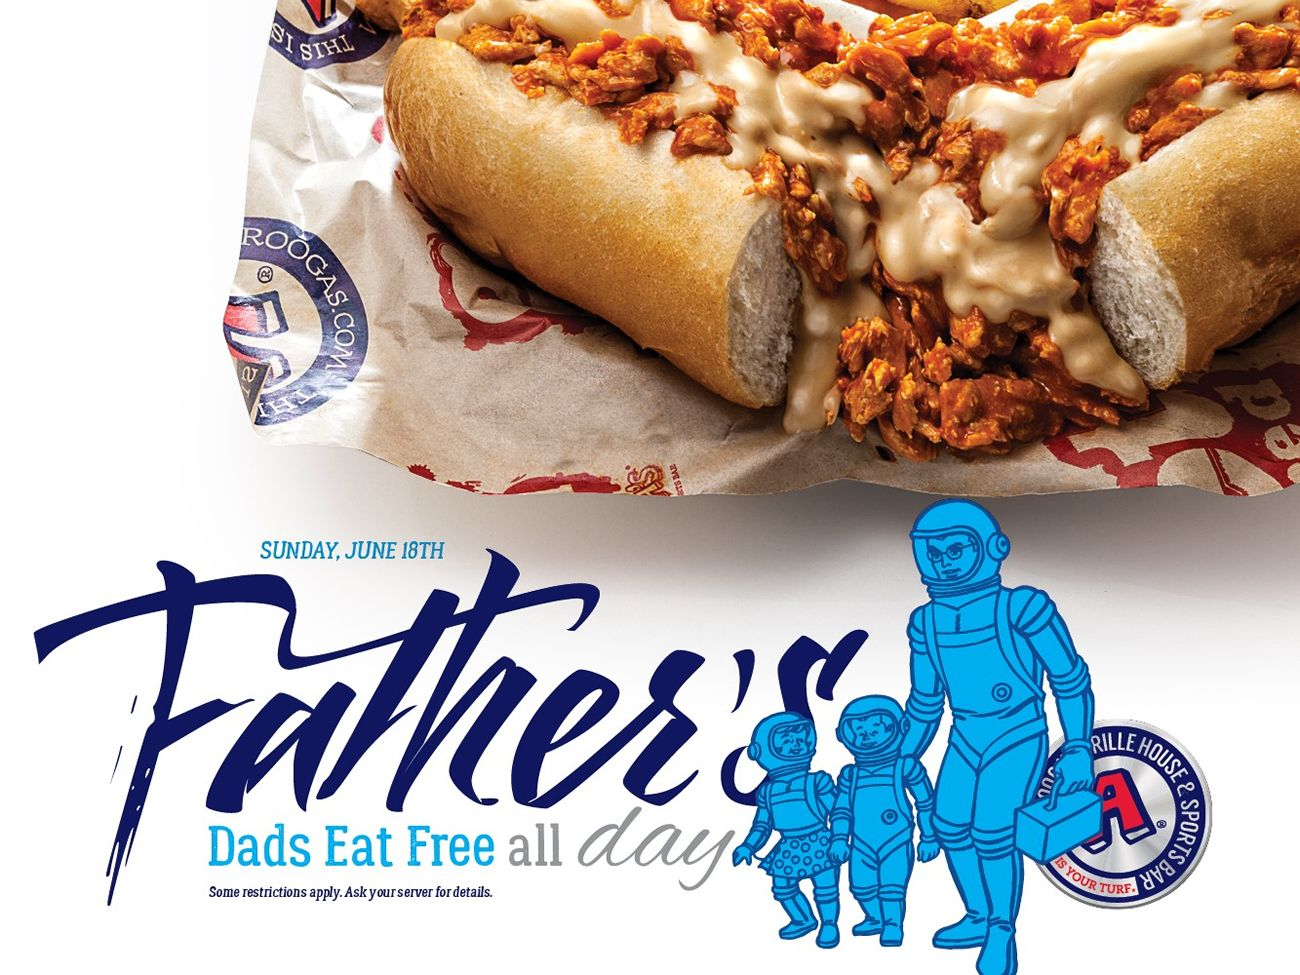 Dads eat for free on Father's Day. Choose from the 15 layer lasagna or the spaghetti and meatballs, and the meal is complimentary. It's as simple as that, no coupon required. Also, enter their.